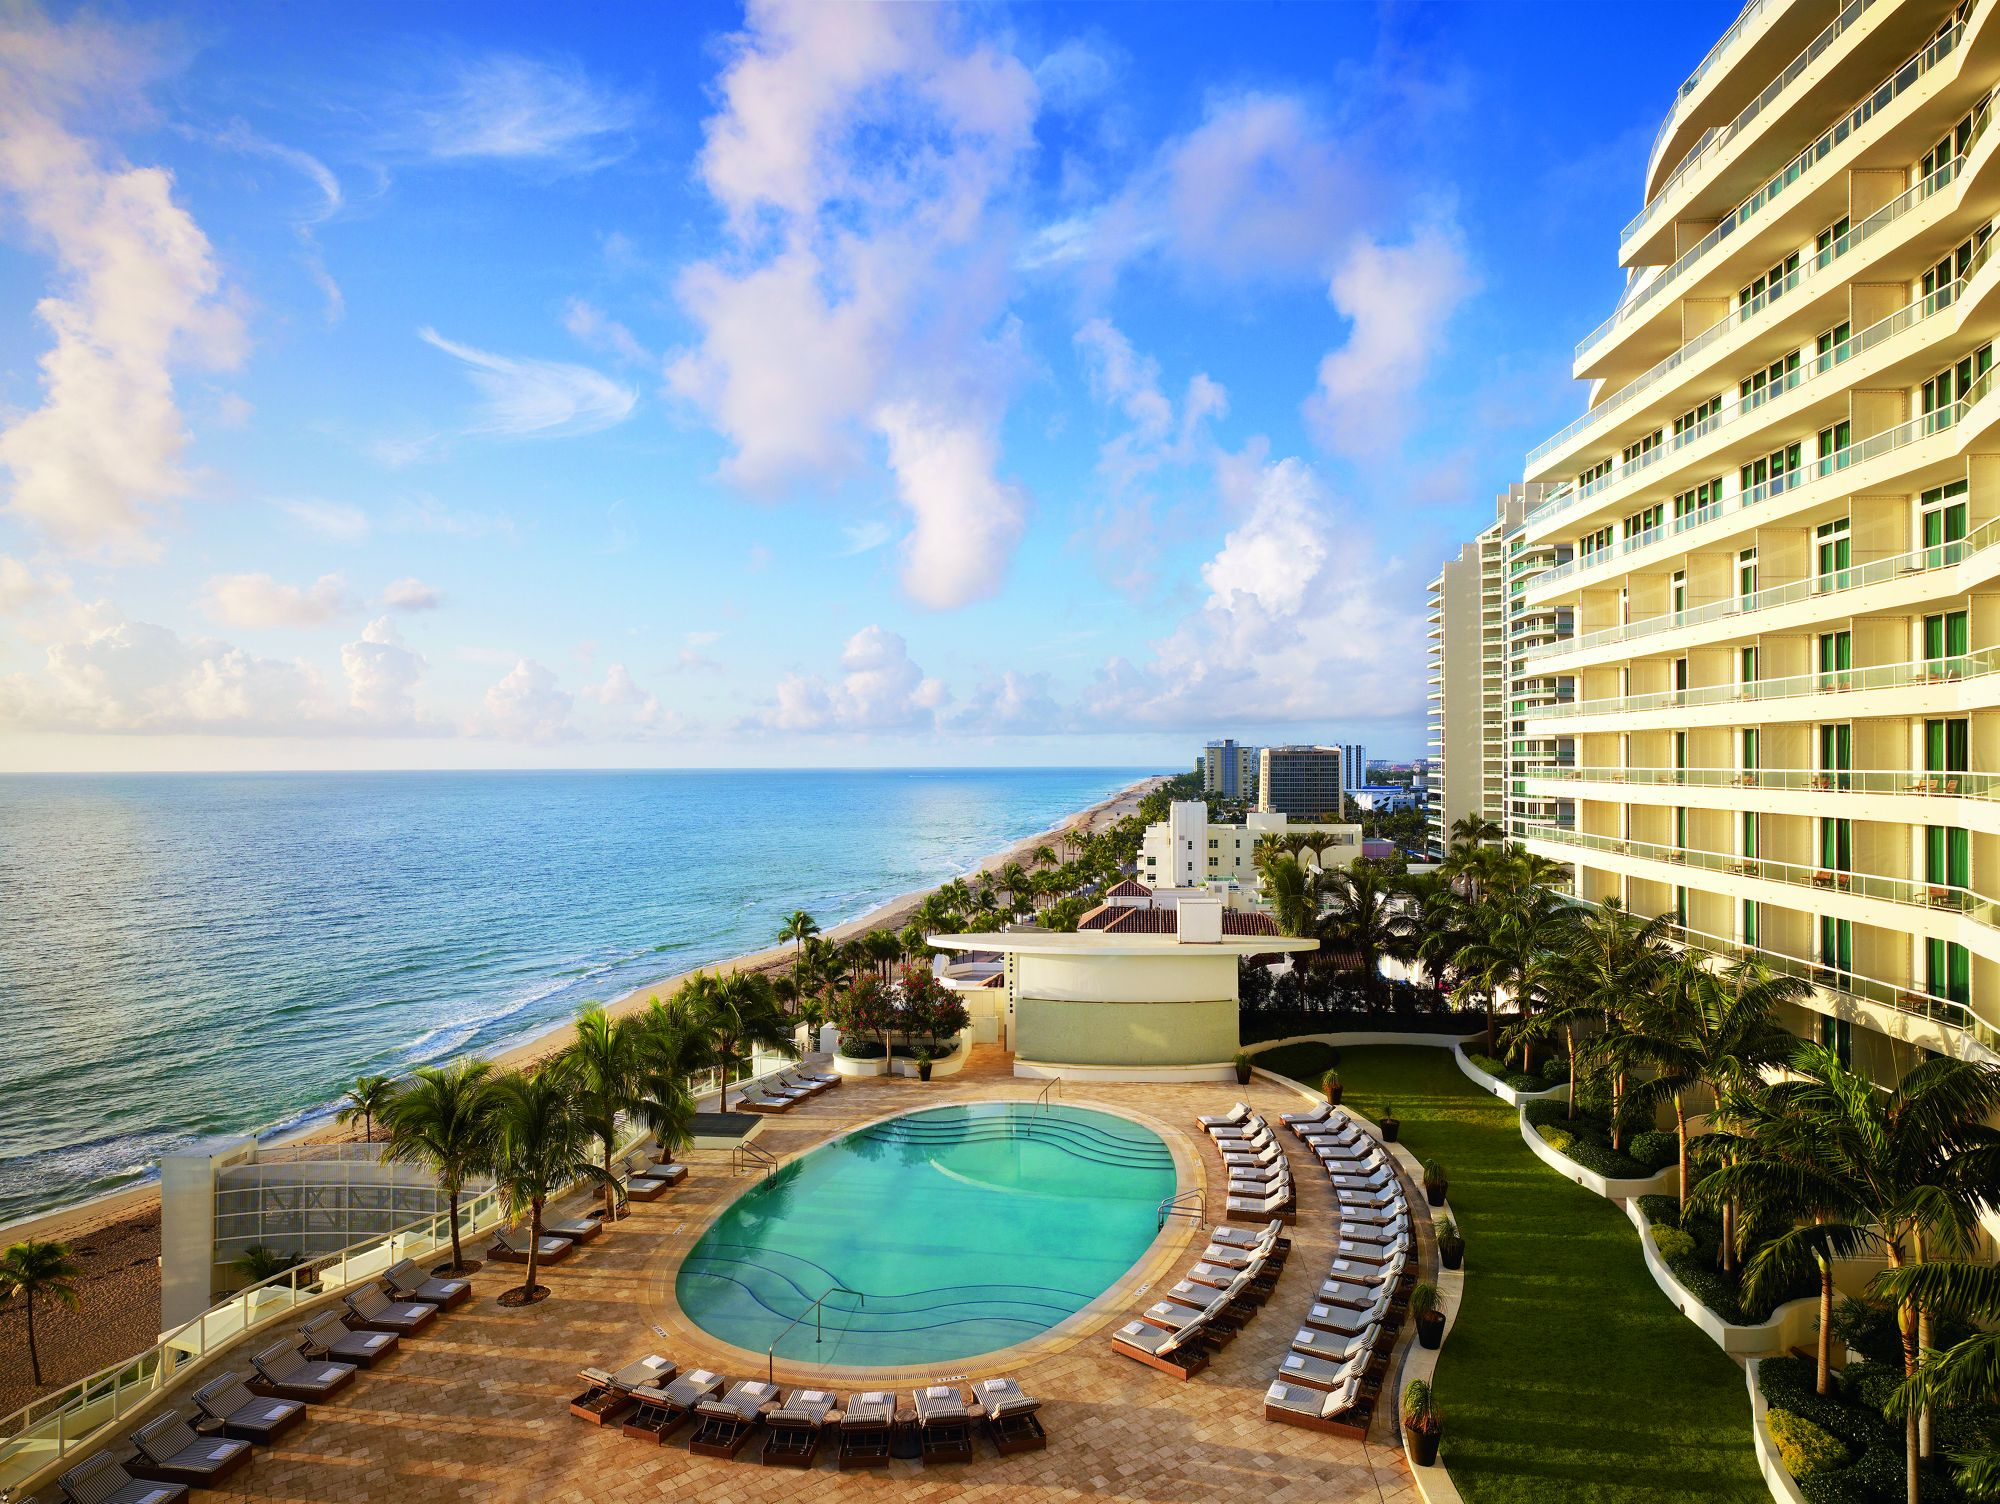 Fort Lauderdale Vacation Packages | The Ritz-Carlton, Fort